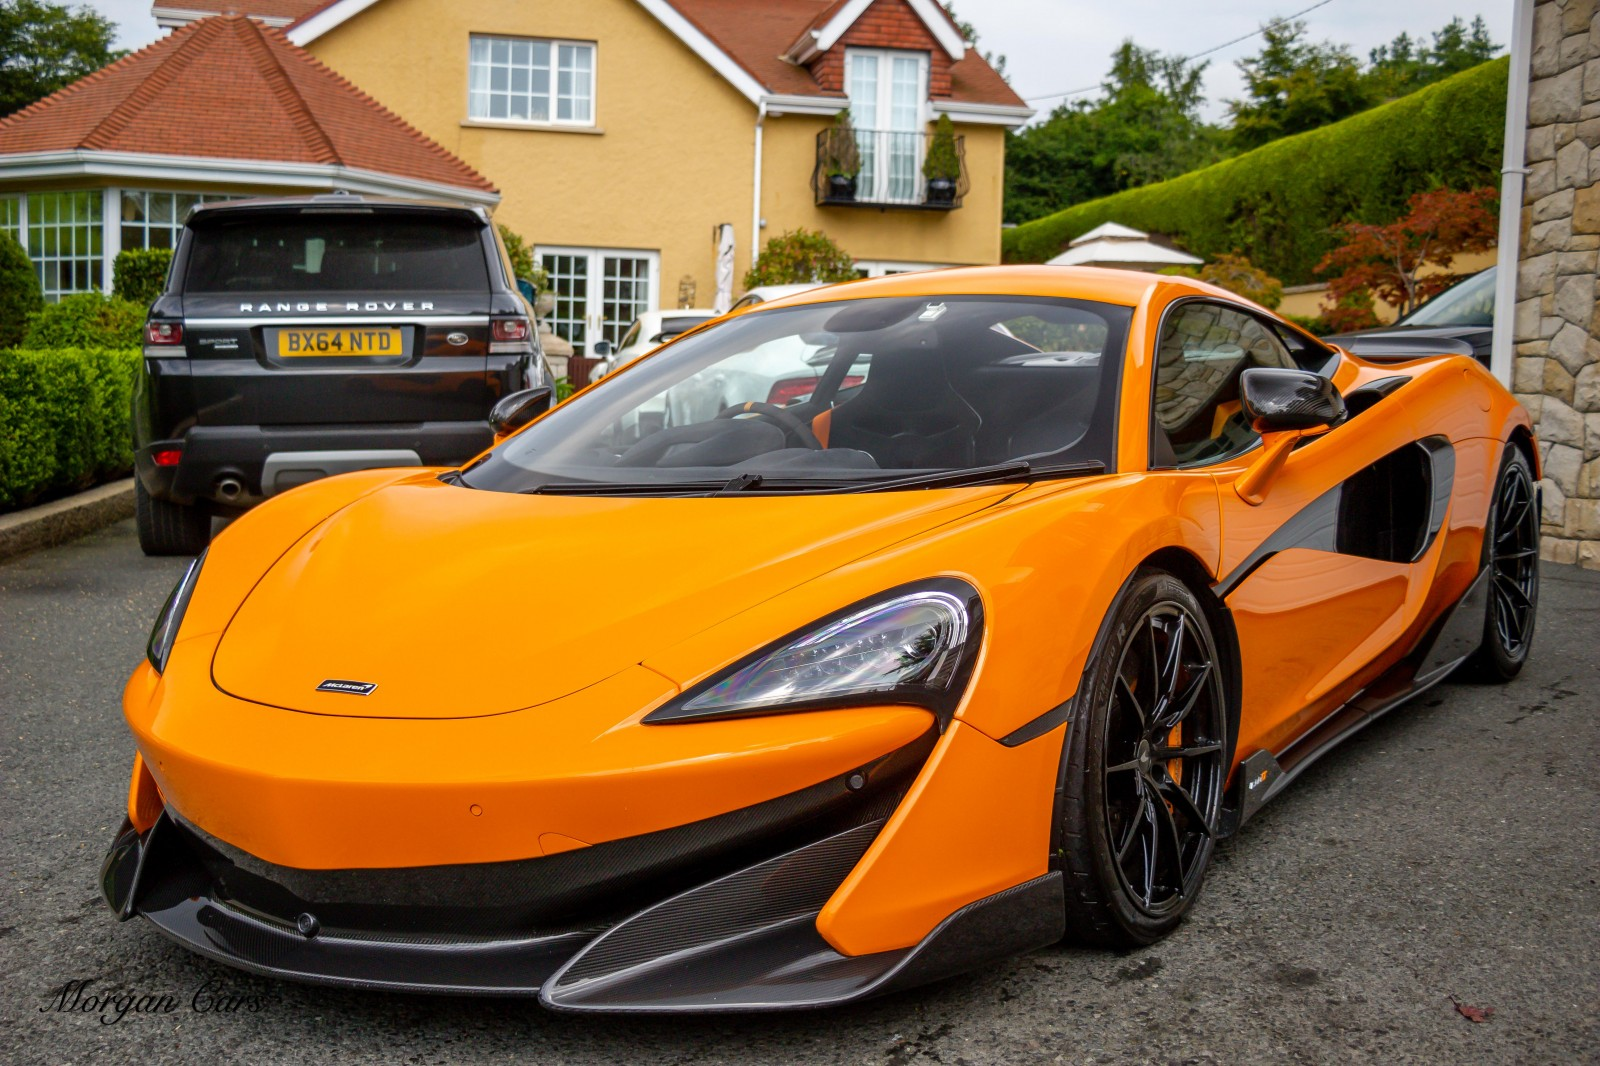 2019 McLaren 600LT V8 3.8 SSG Petrol Automatic – Morgan Cars 9 Mound Road, Warrenpoint, Newry BT34 3LW, UK full